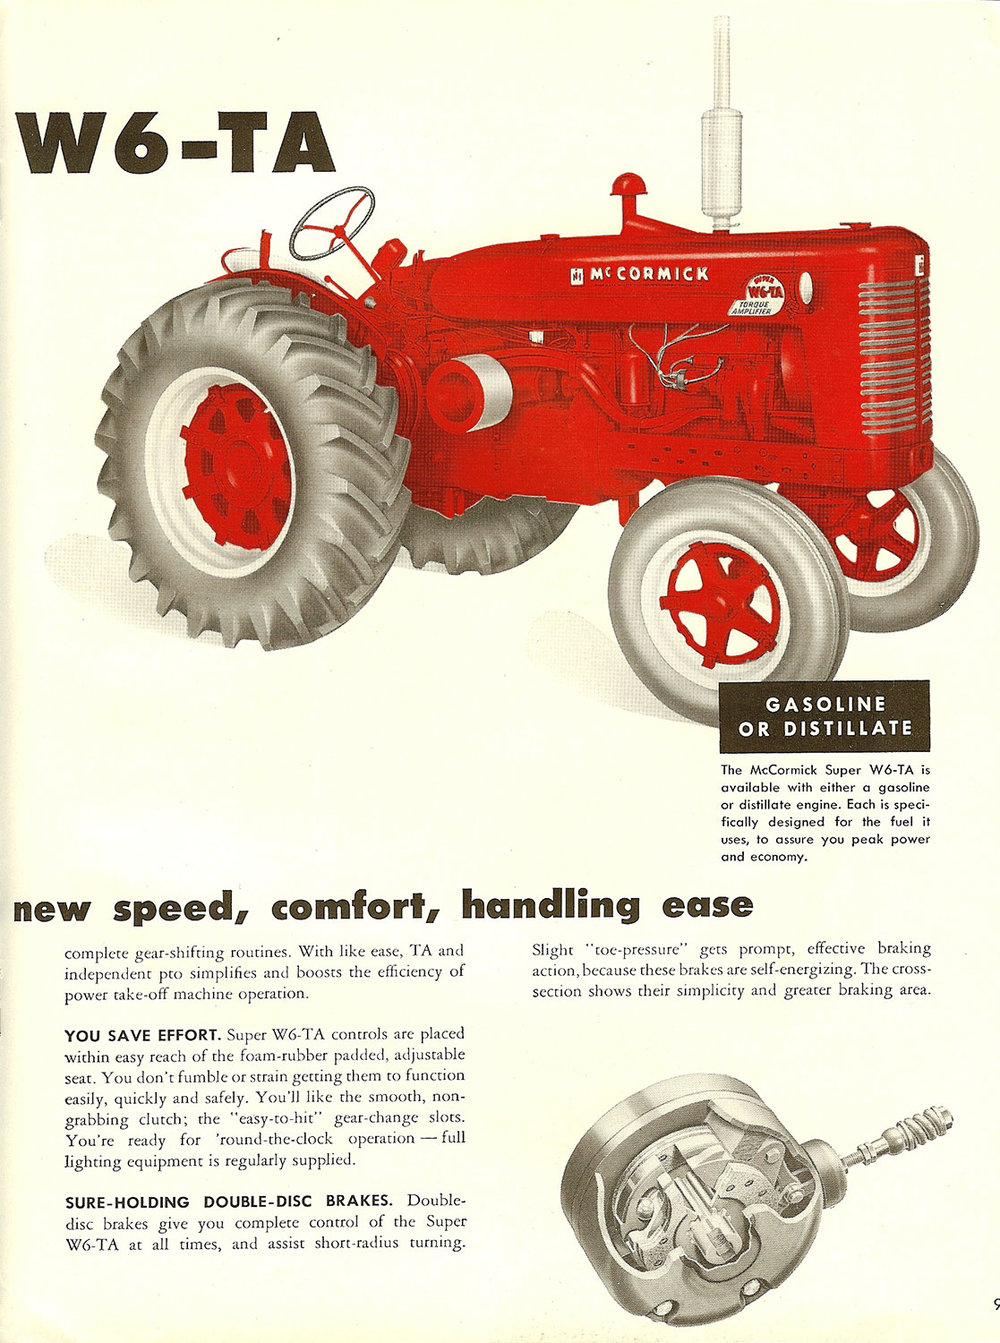 Vintage-Agriculture-Advertising-McCormick-Tractor.jpg